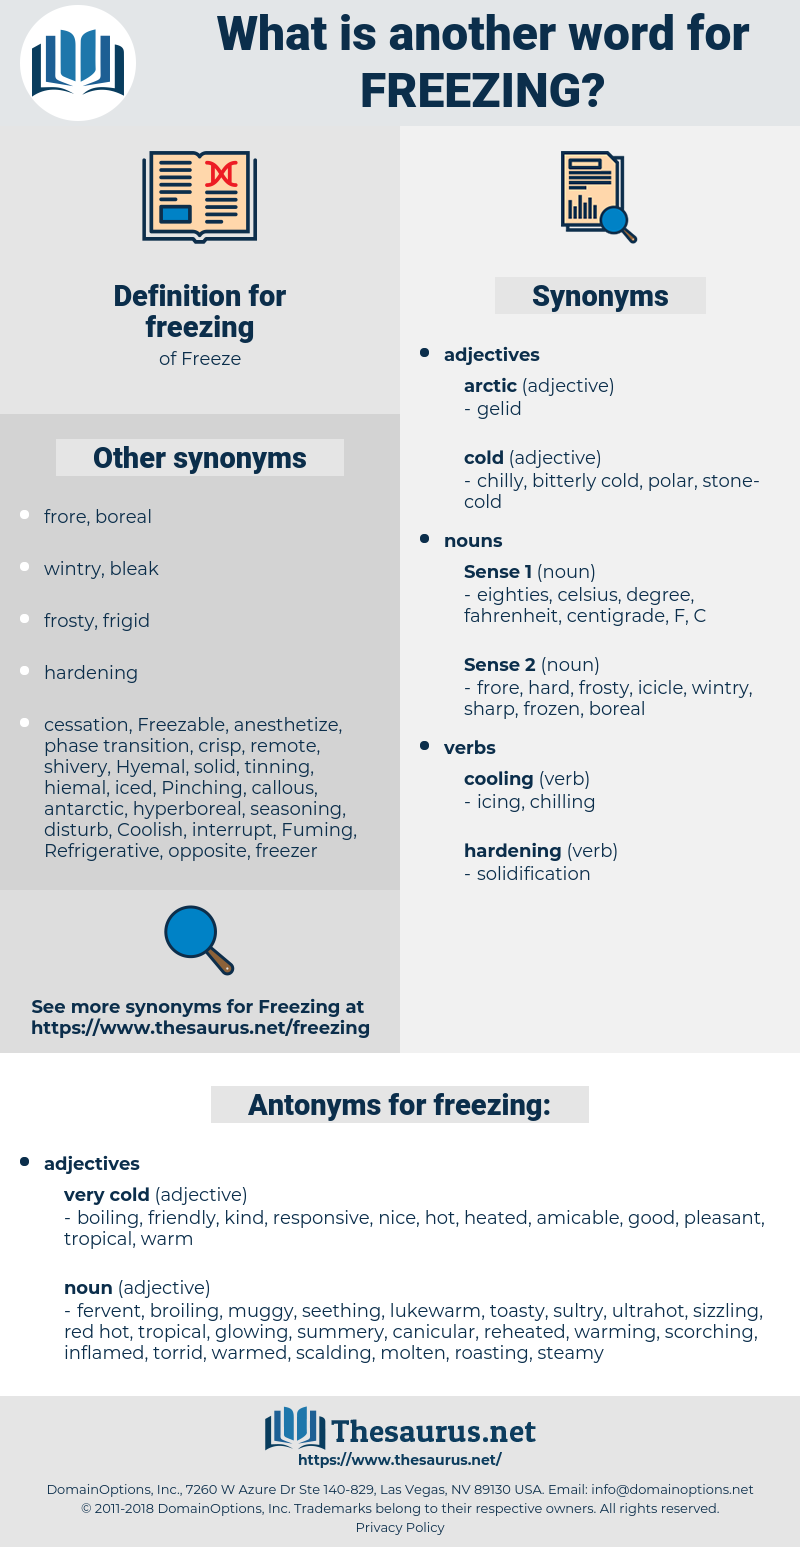 freezing, synonym freezing, another word for freezing, words like freezing, thesaurus freezing